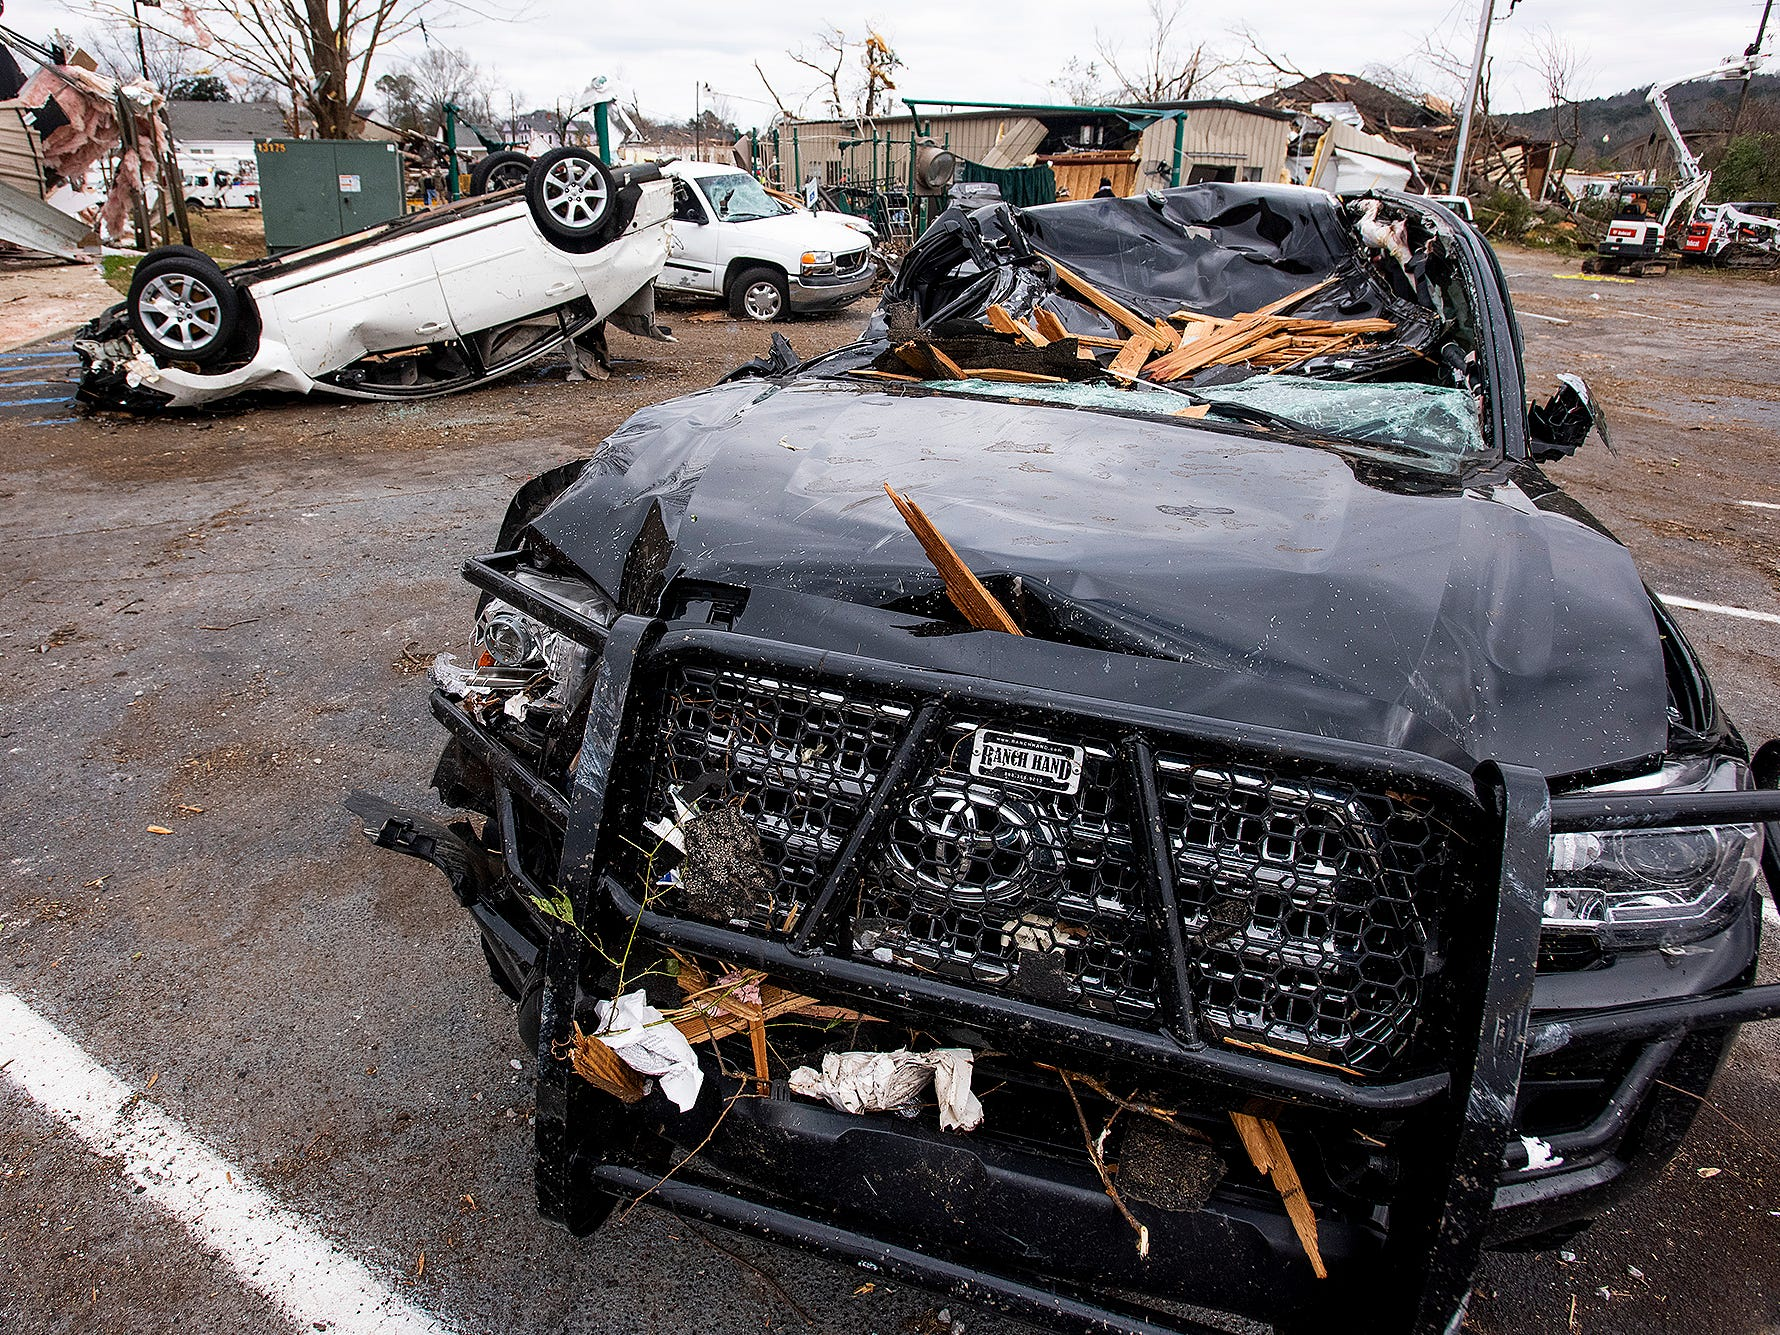 Damaged vehicles on Sunday January 20, 2019, after a tornado hit Wetumpka, Ala., on Saturday afternoon.